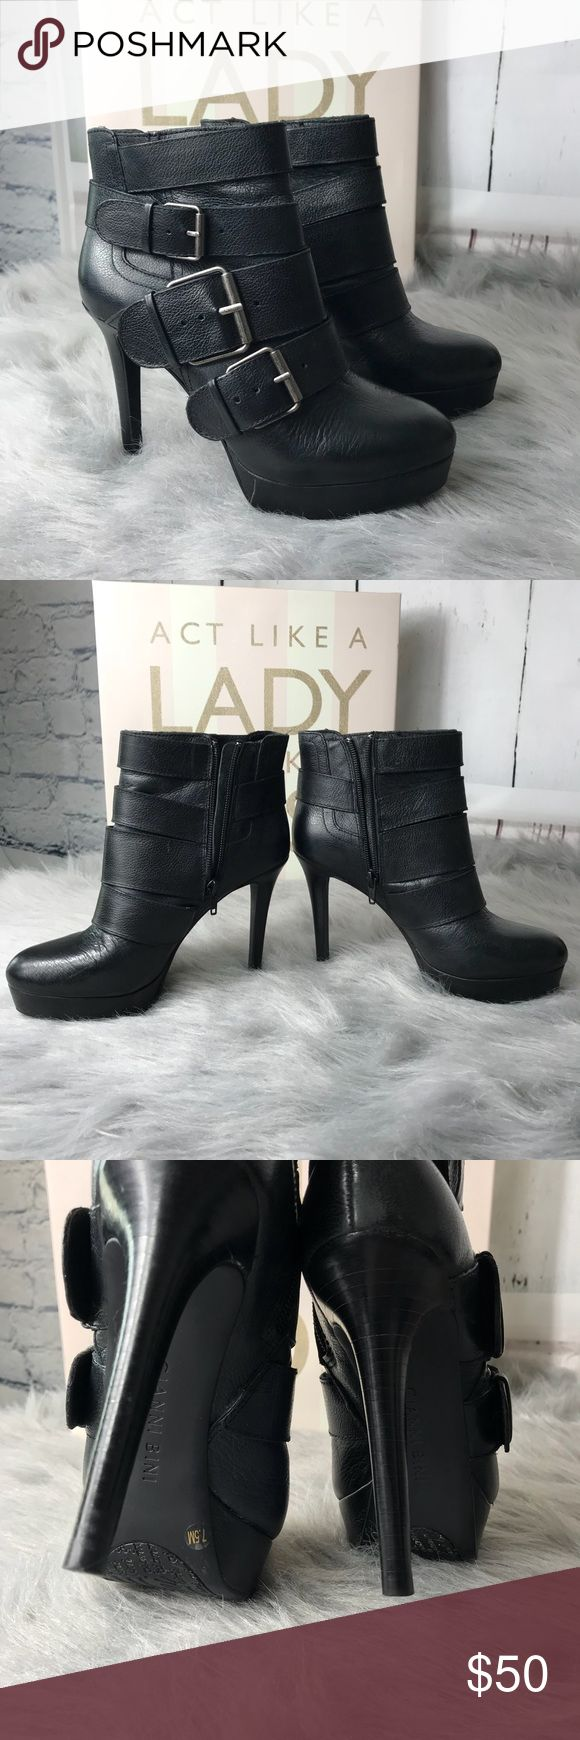 Gianni Bini Heeled Platform Booties Gianni Bini Heeled Platform Booties Buckle Detail Side Zipper Size 7.5 Excellent Good Condition No Trades No Box Gianni Bini Shoes Heeled Boots